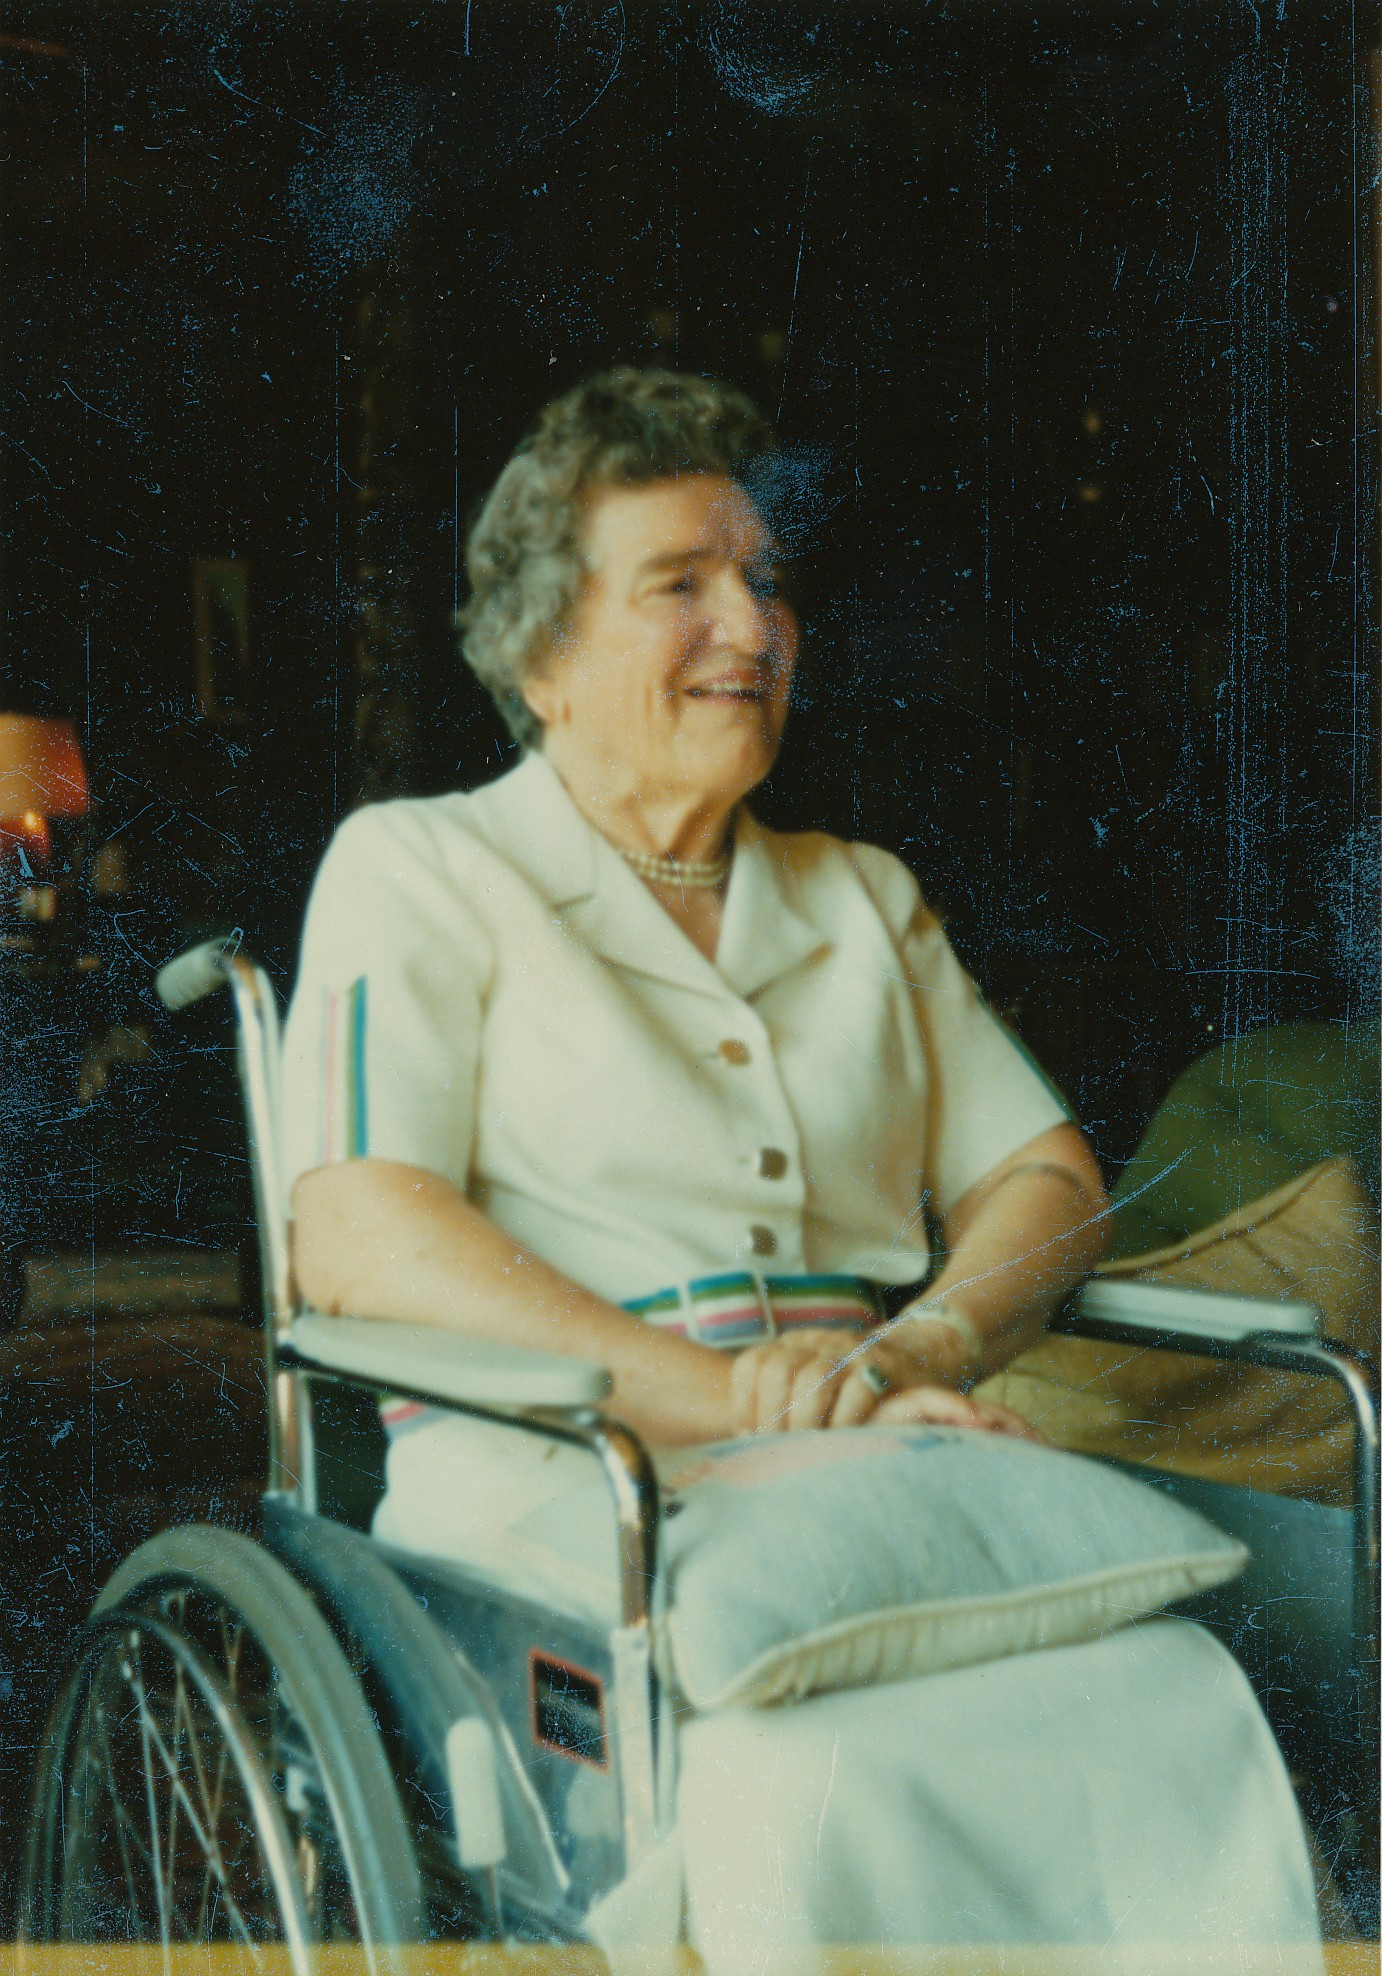 Elisabeth smiles from her wheelchair on a sunny day.